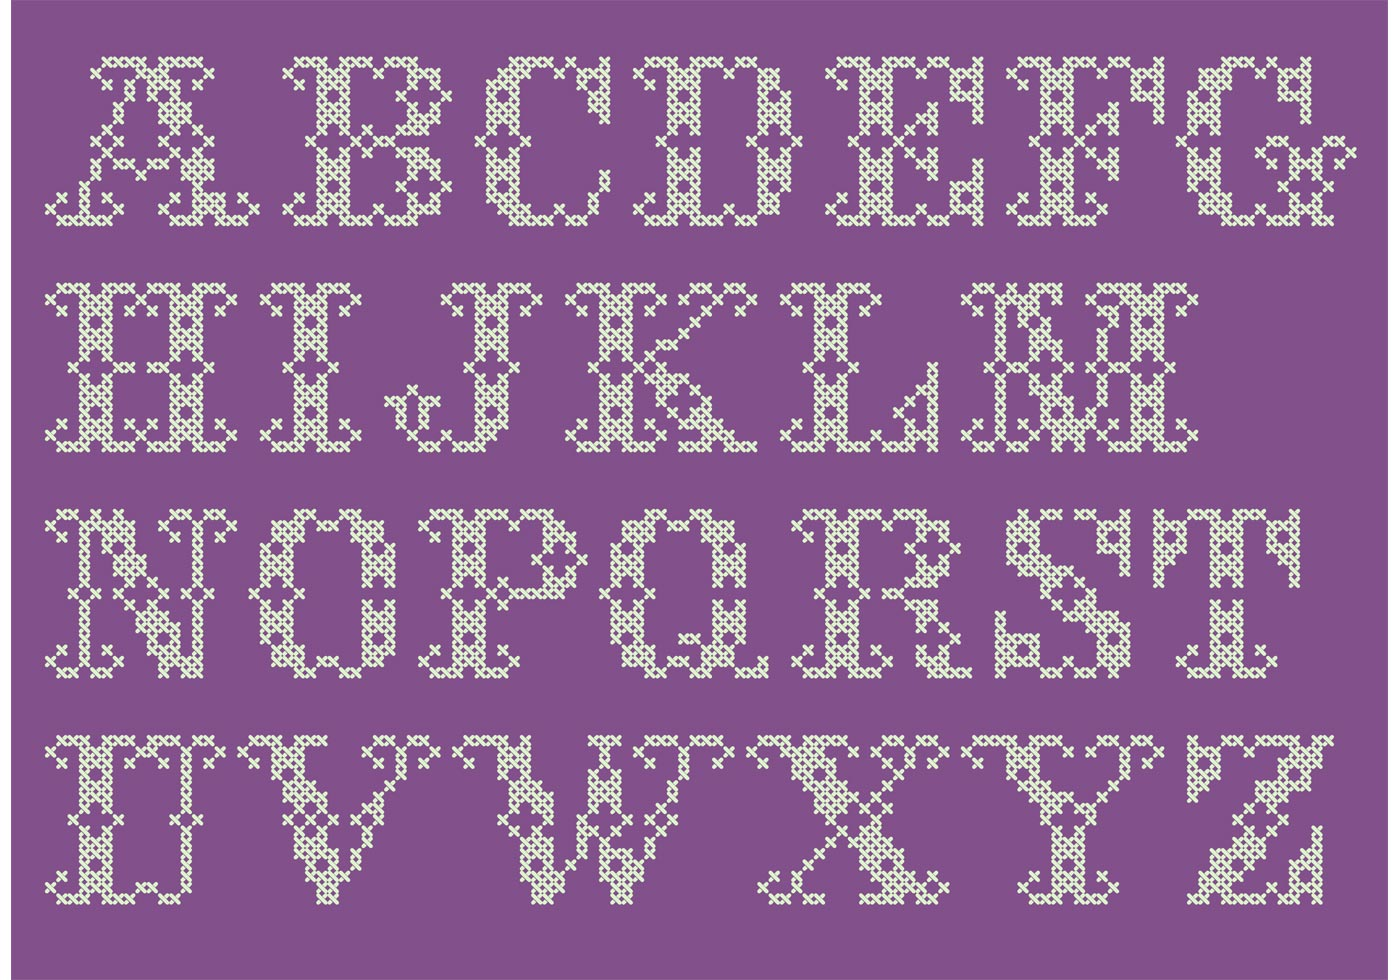 Cross Stitch Alphabet Patterns Interesting Design Inspiration